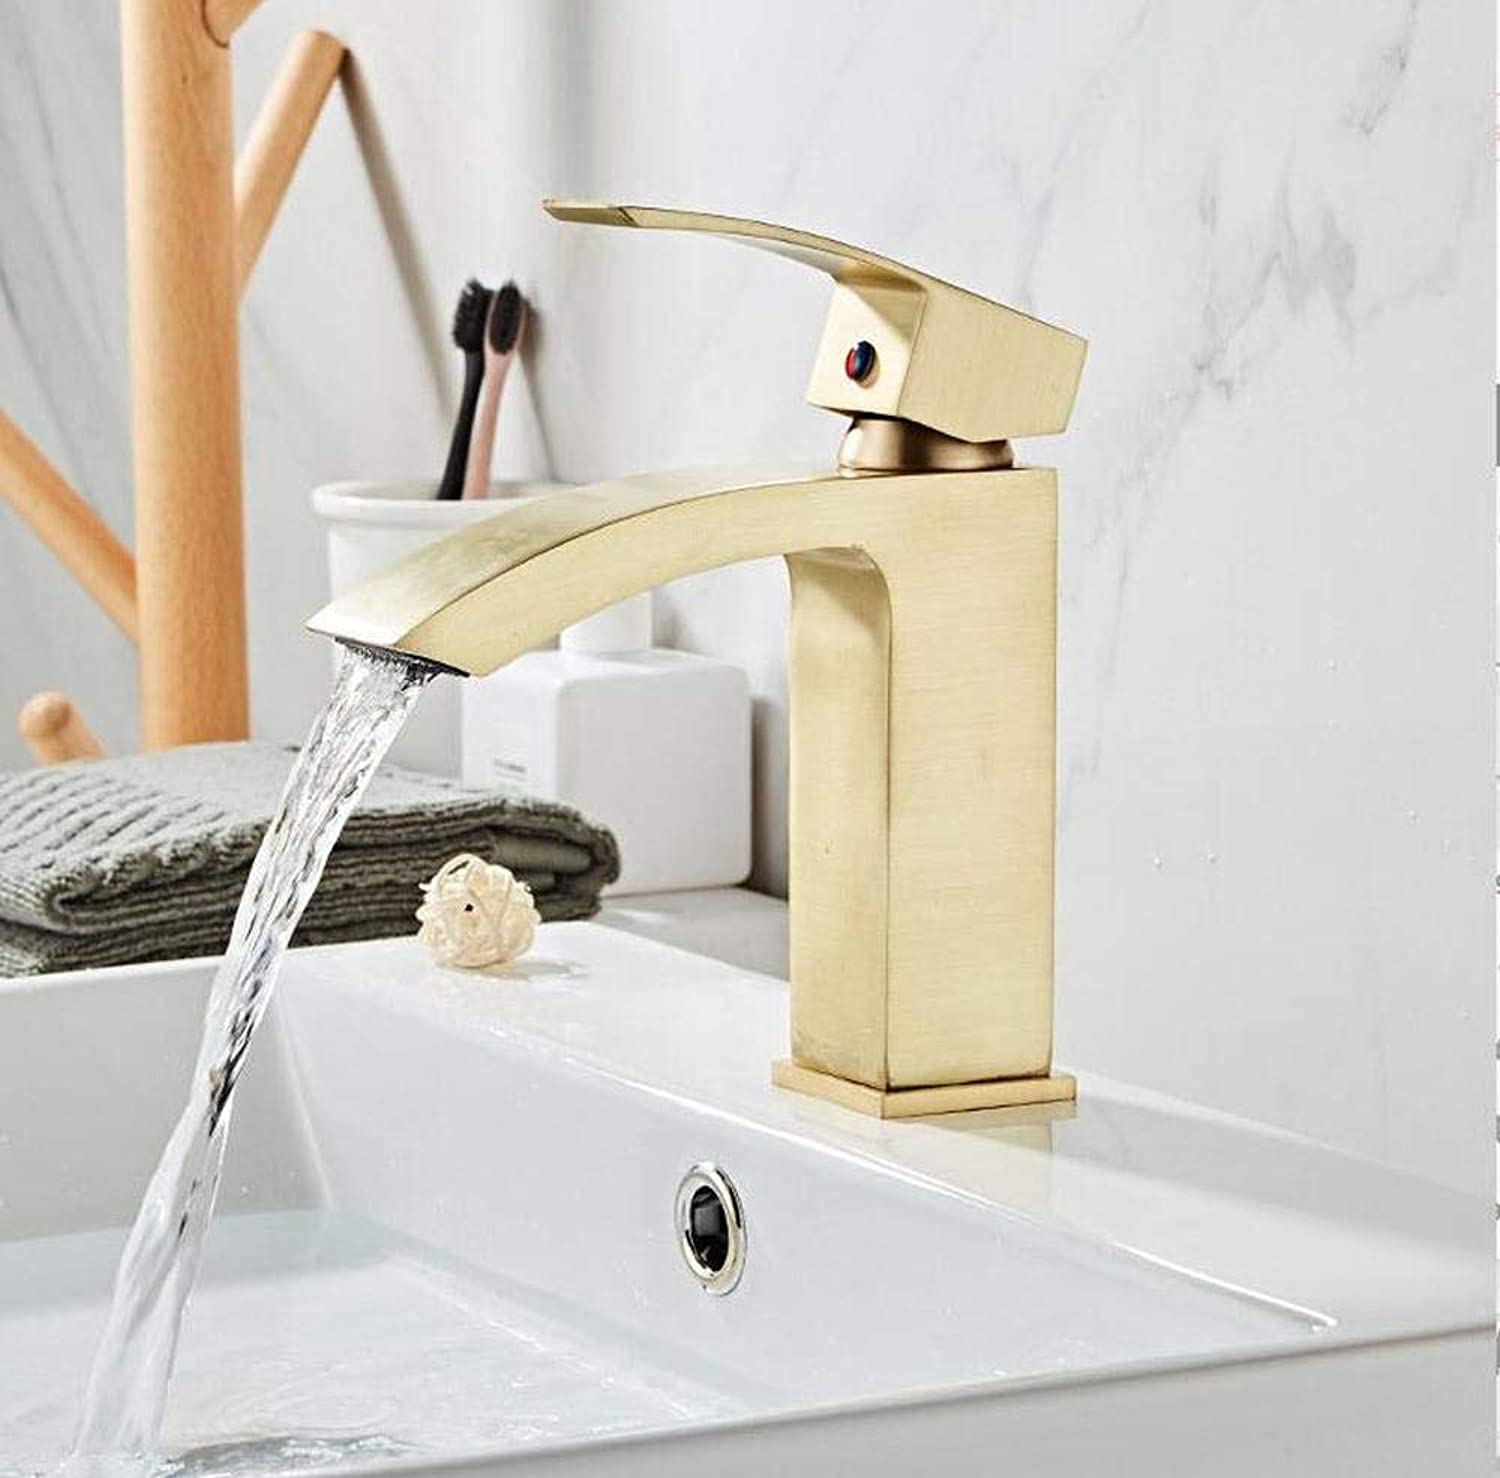 Faucet Basin Basin Faucet Brass Sink Mixer Tap Bathroom Hot & Cold Waterfall Faucet Brushed gold Single Handle Deck Mounted Lavatory Crane